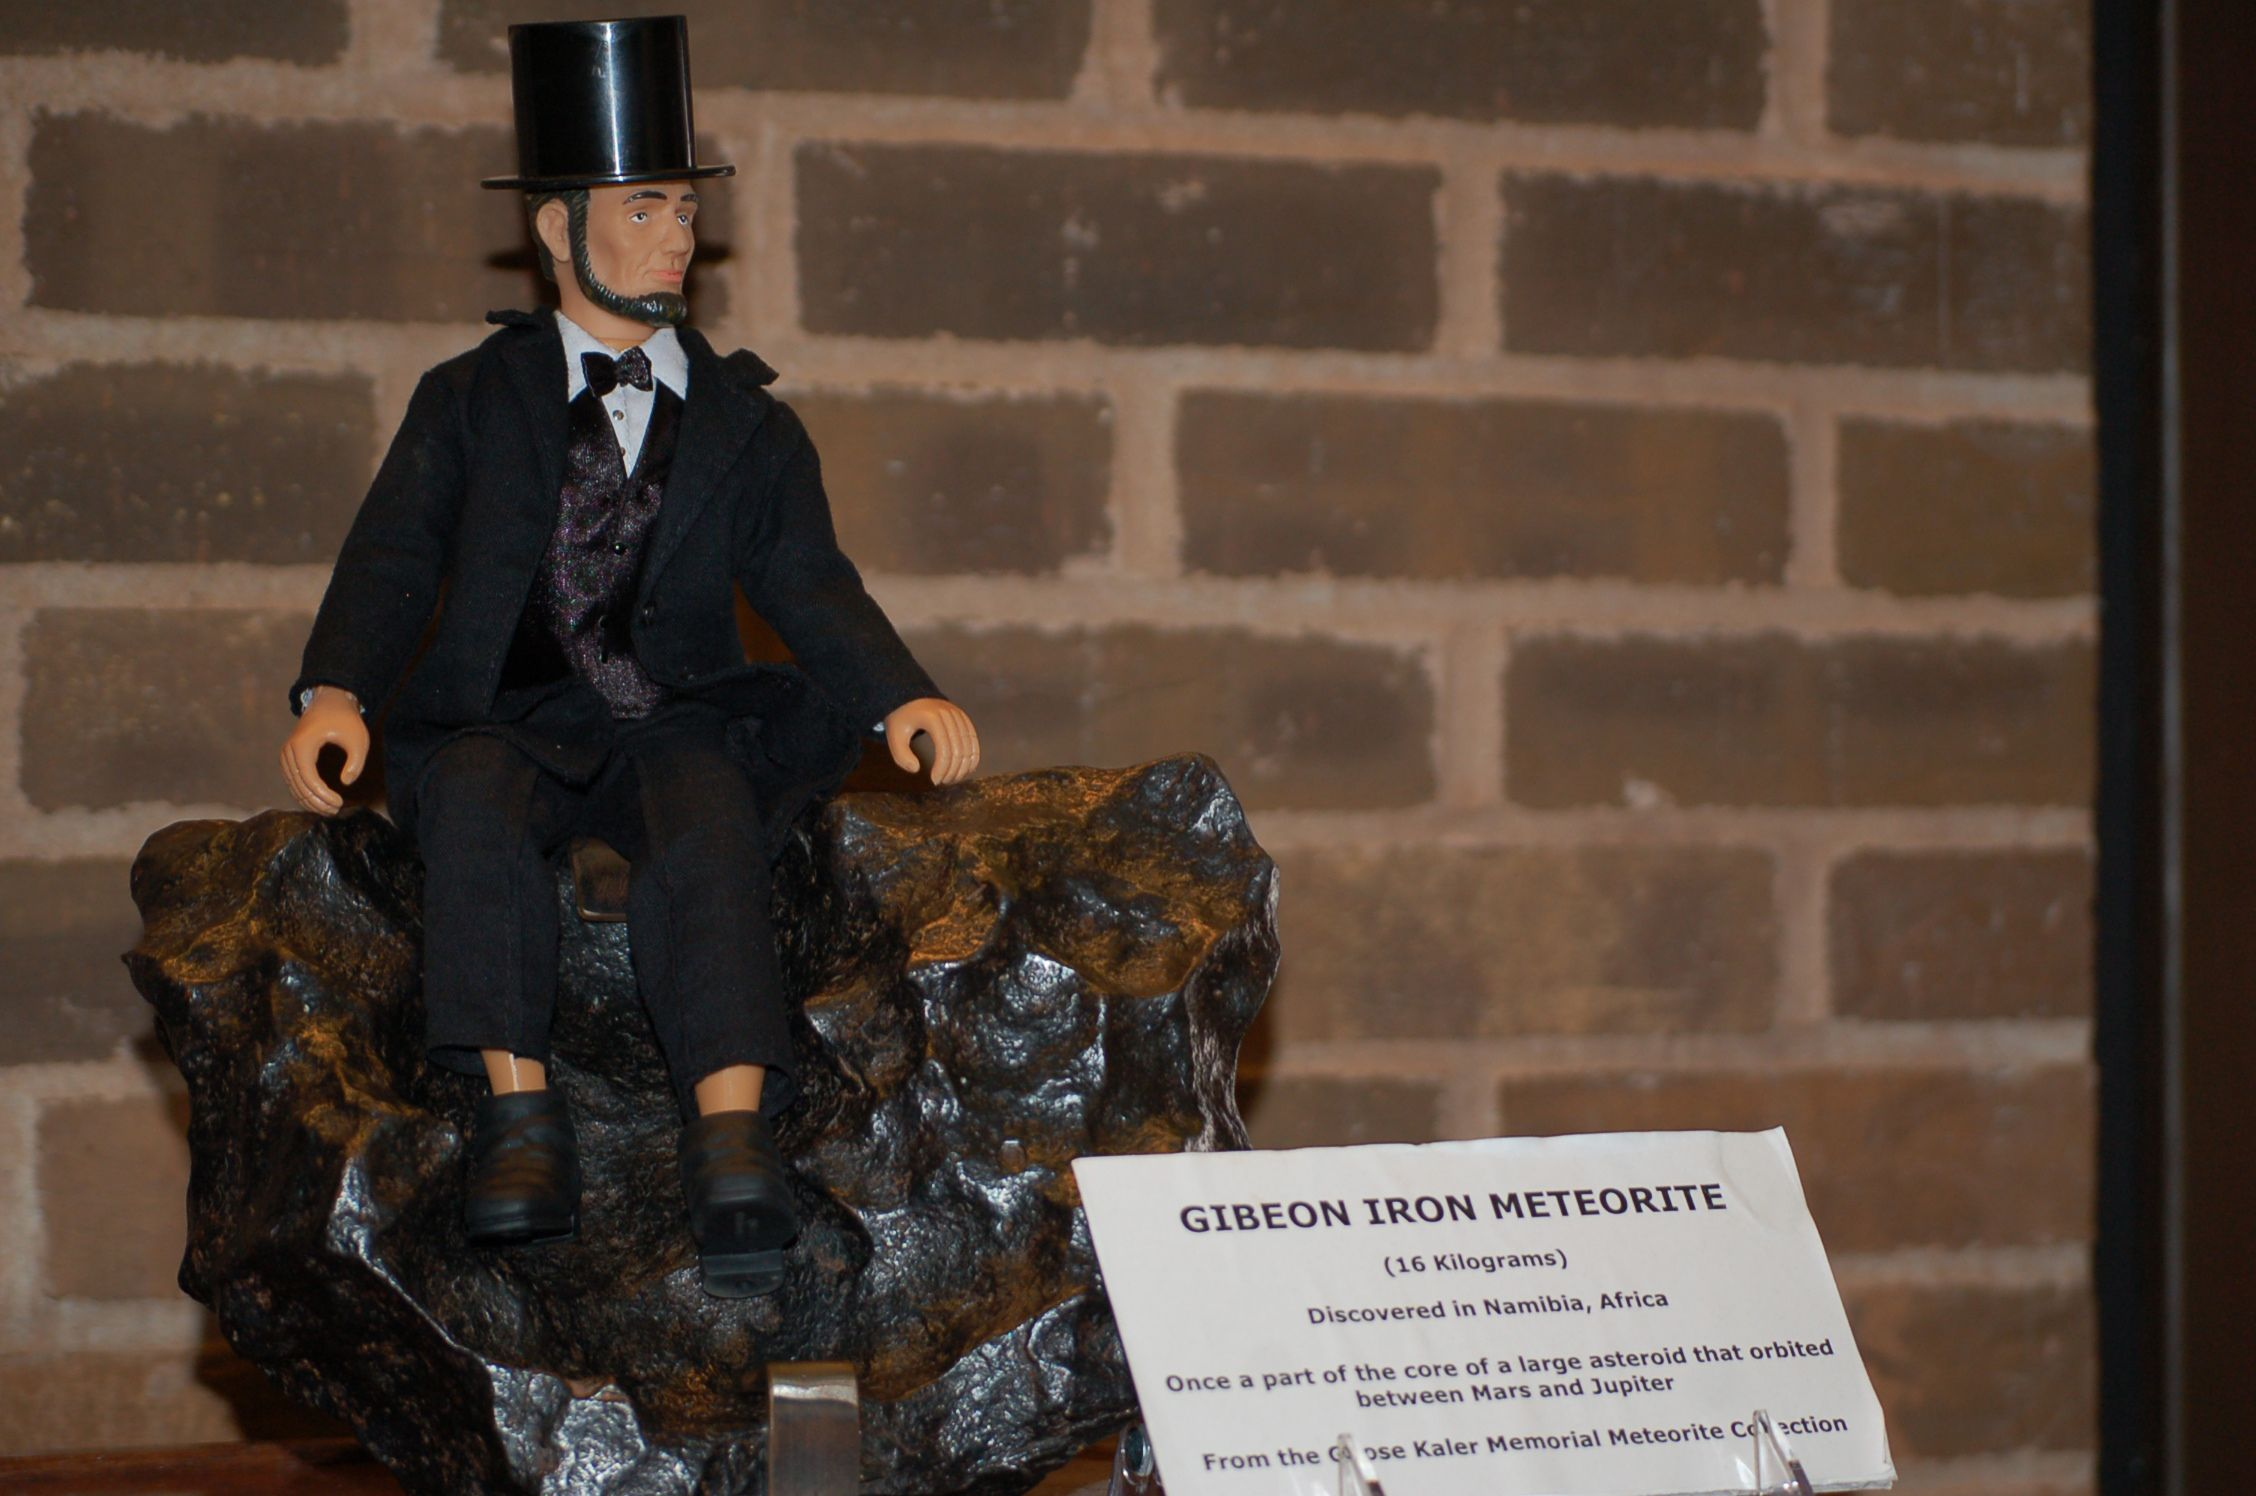 Mini Abe thinks this meteorite makes a great chair at